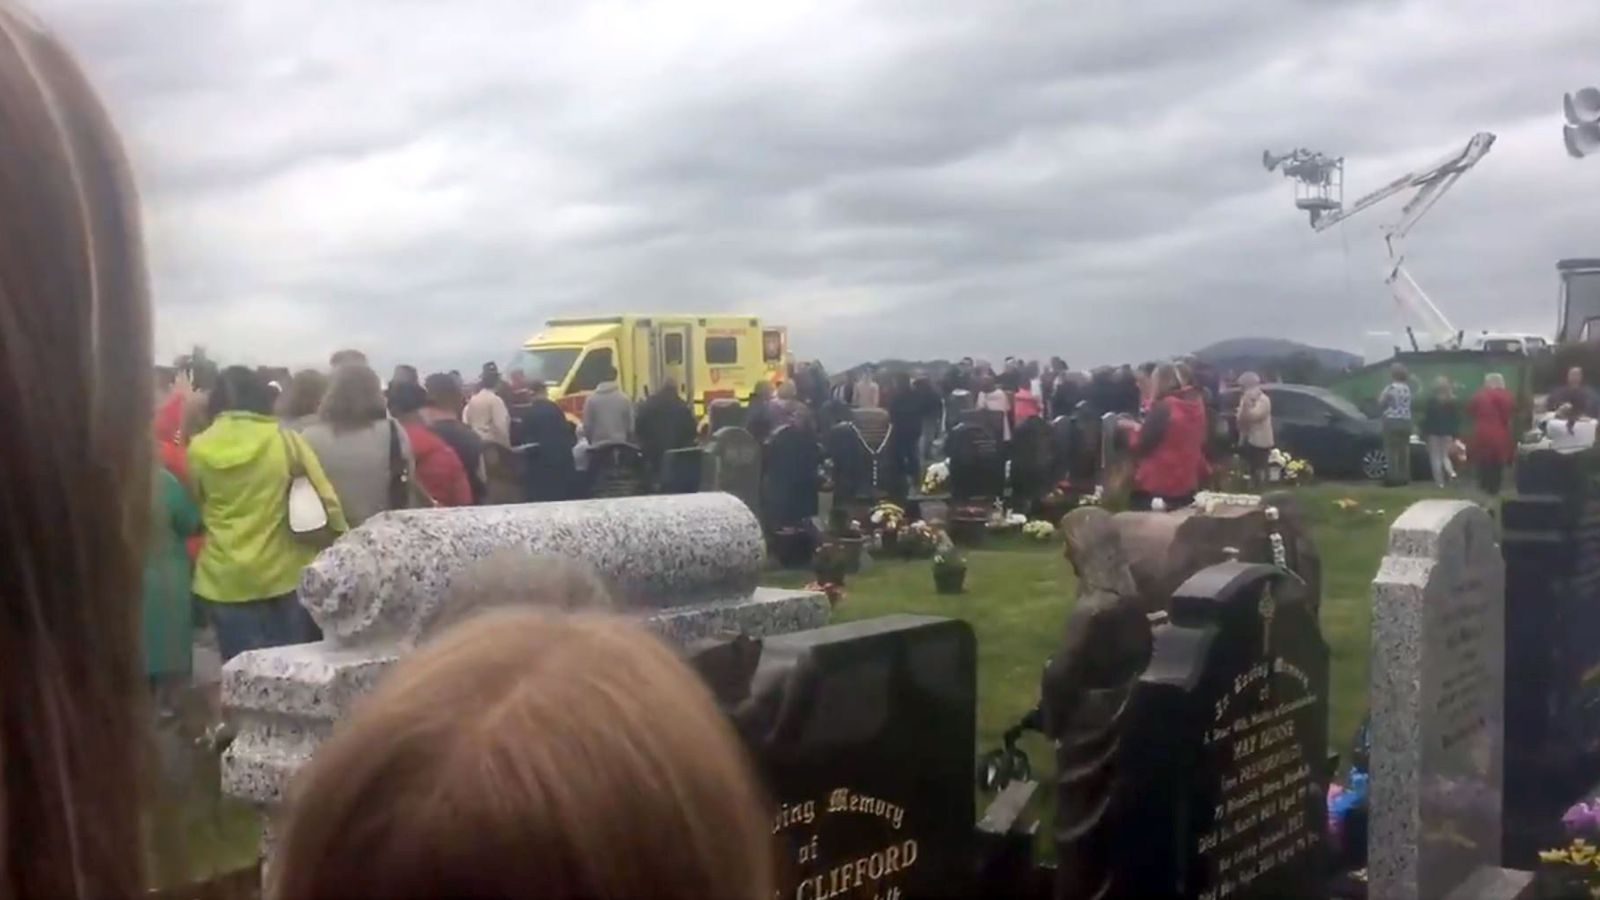 Several injured as car collides with crowds at cemetery